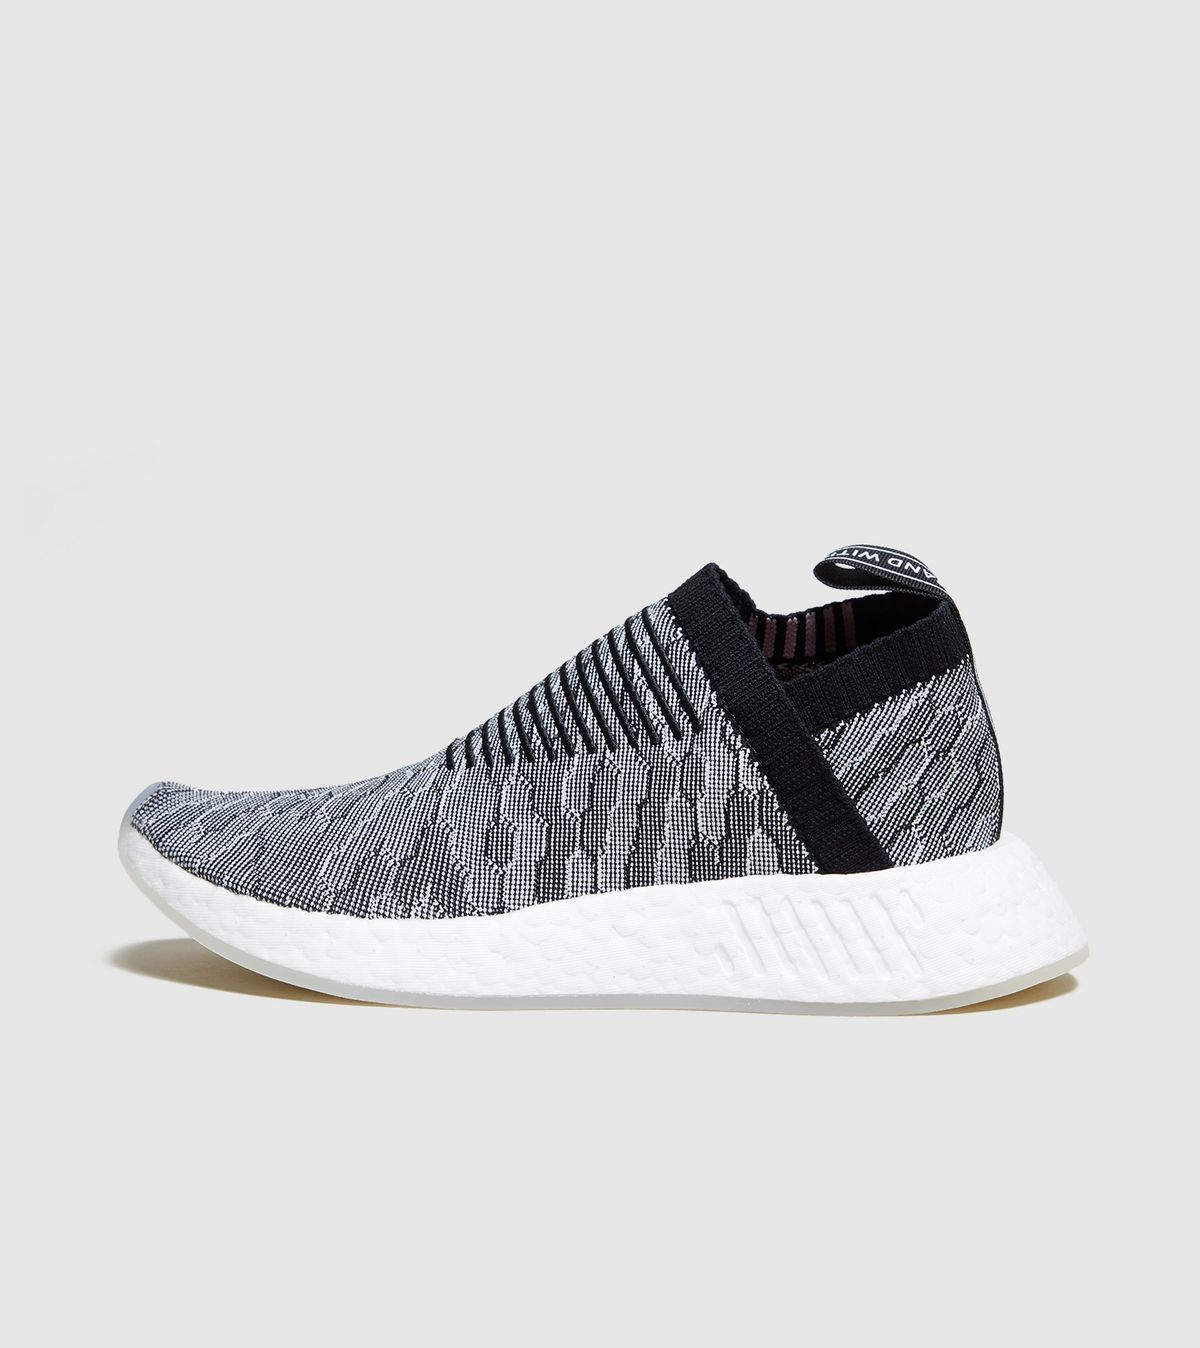 be7ecf02629b9 adidas Originals NMD City Sock Women s